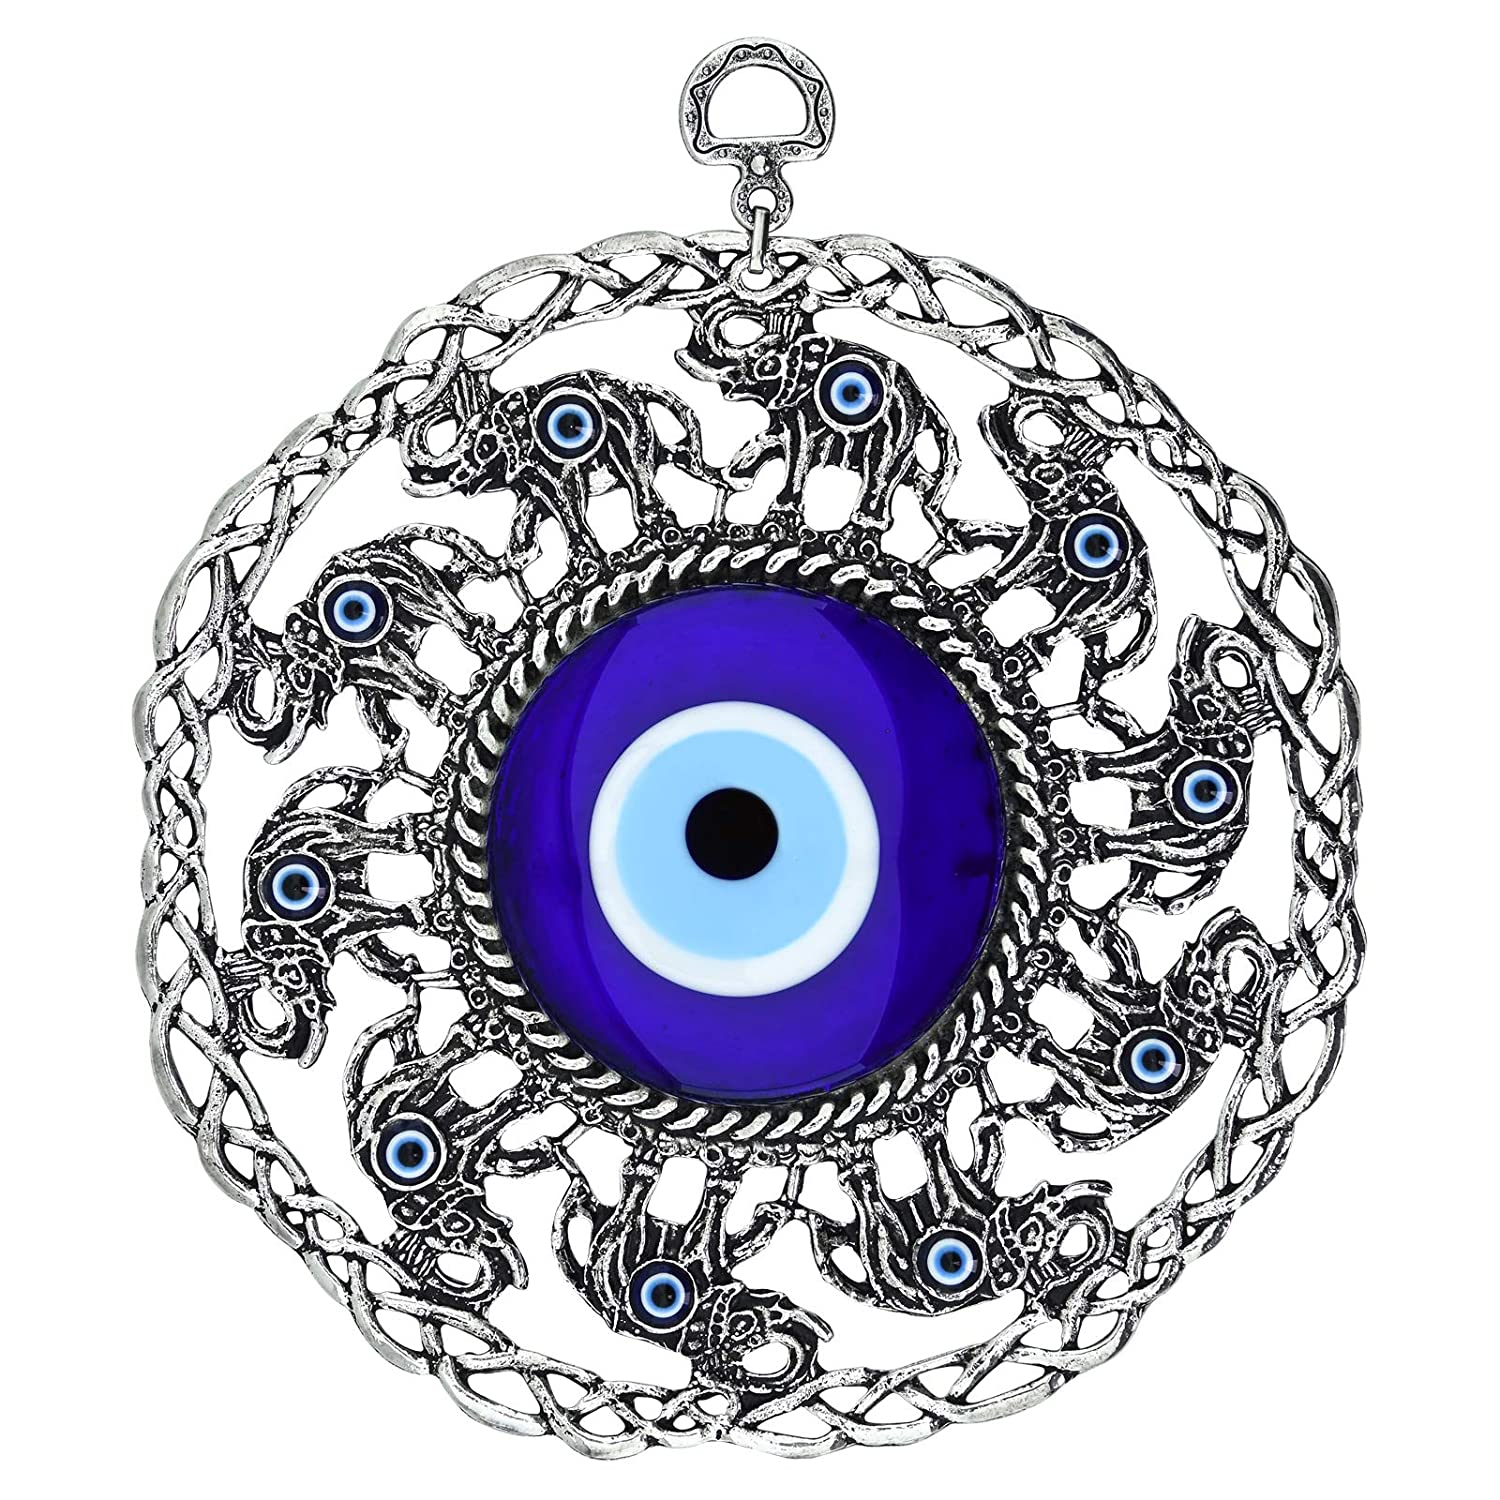 Erbulus Turkish Large Glass Blue Evil Eye Wall Hanging Ornament with Elephant - Metal Home Decor - Turkish Amulet - Protection and Good Luck Charm Gift (Blue Elephant)